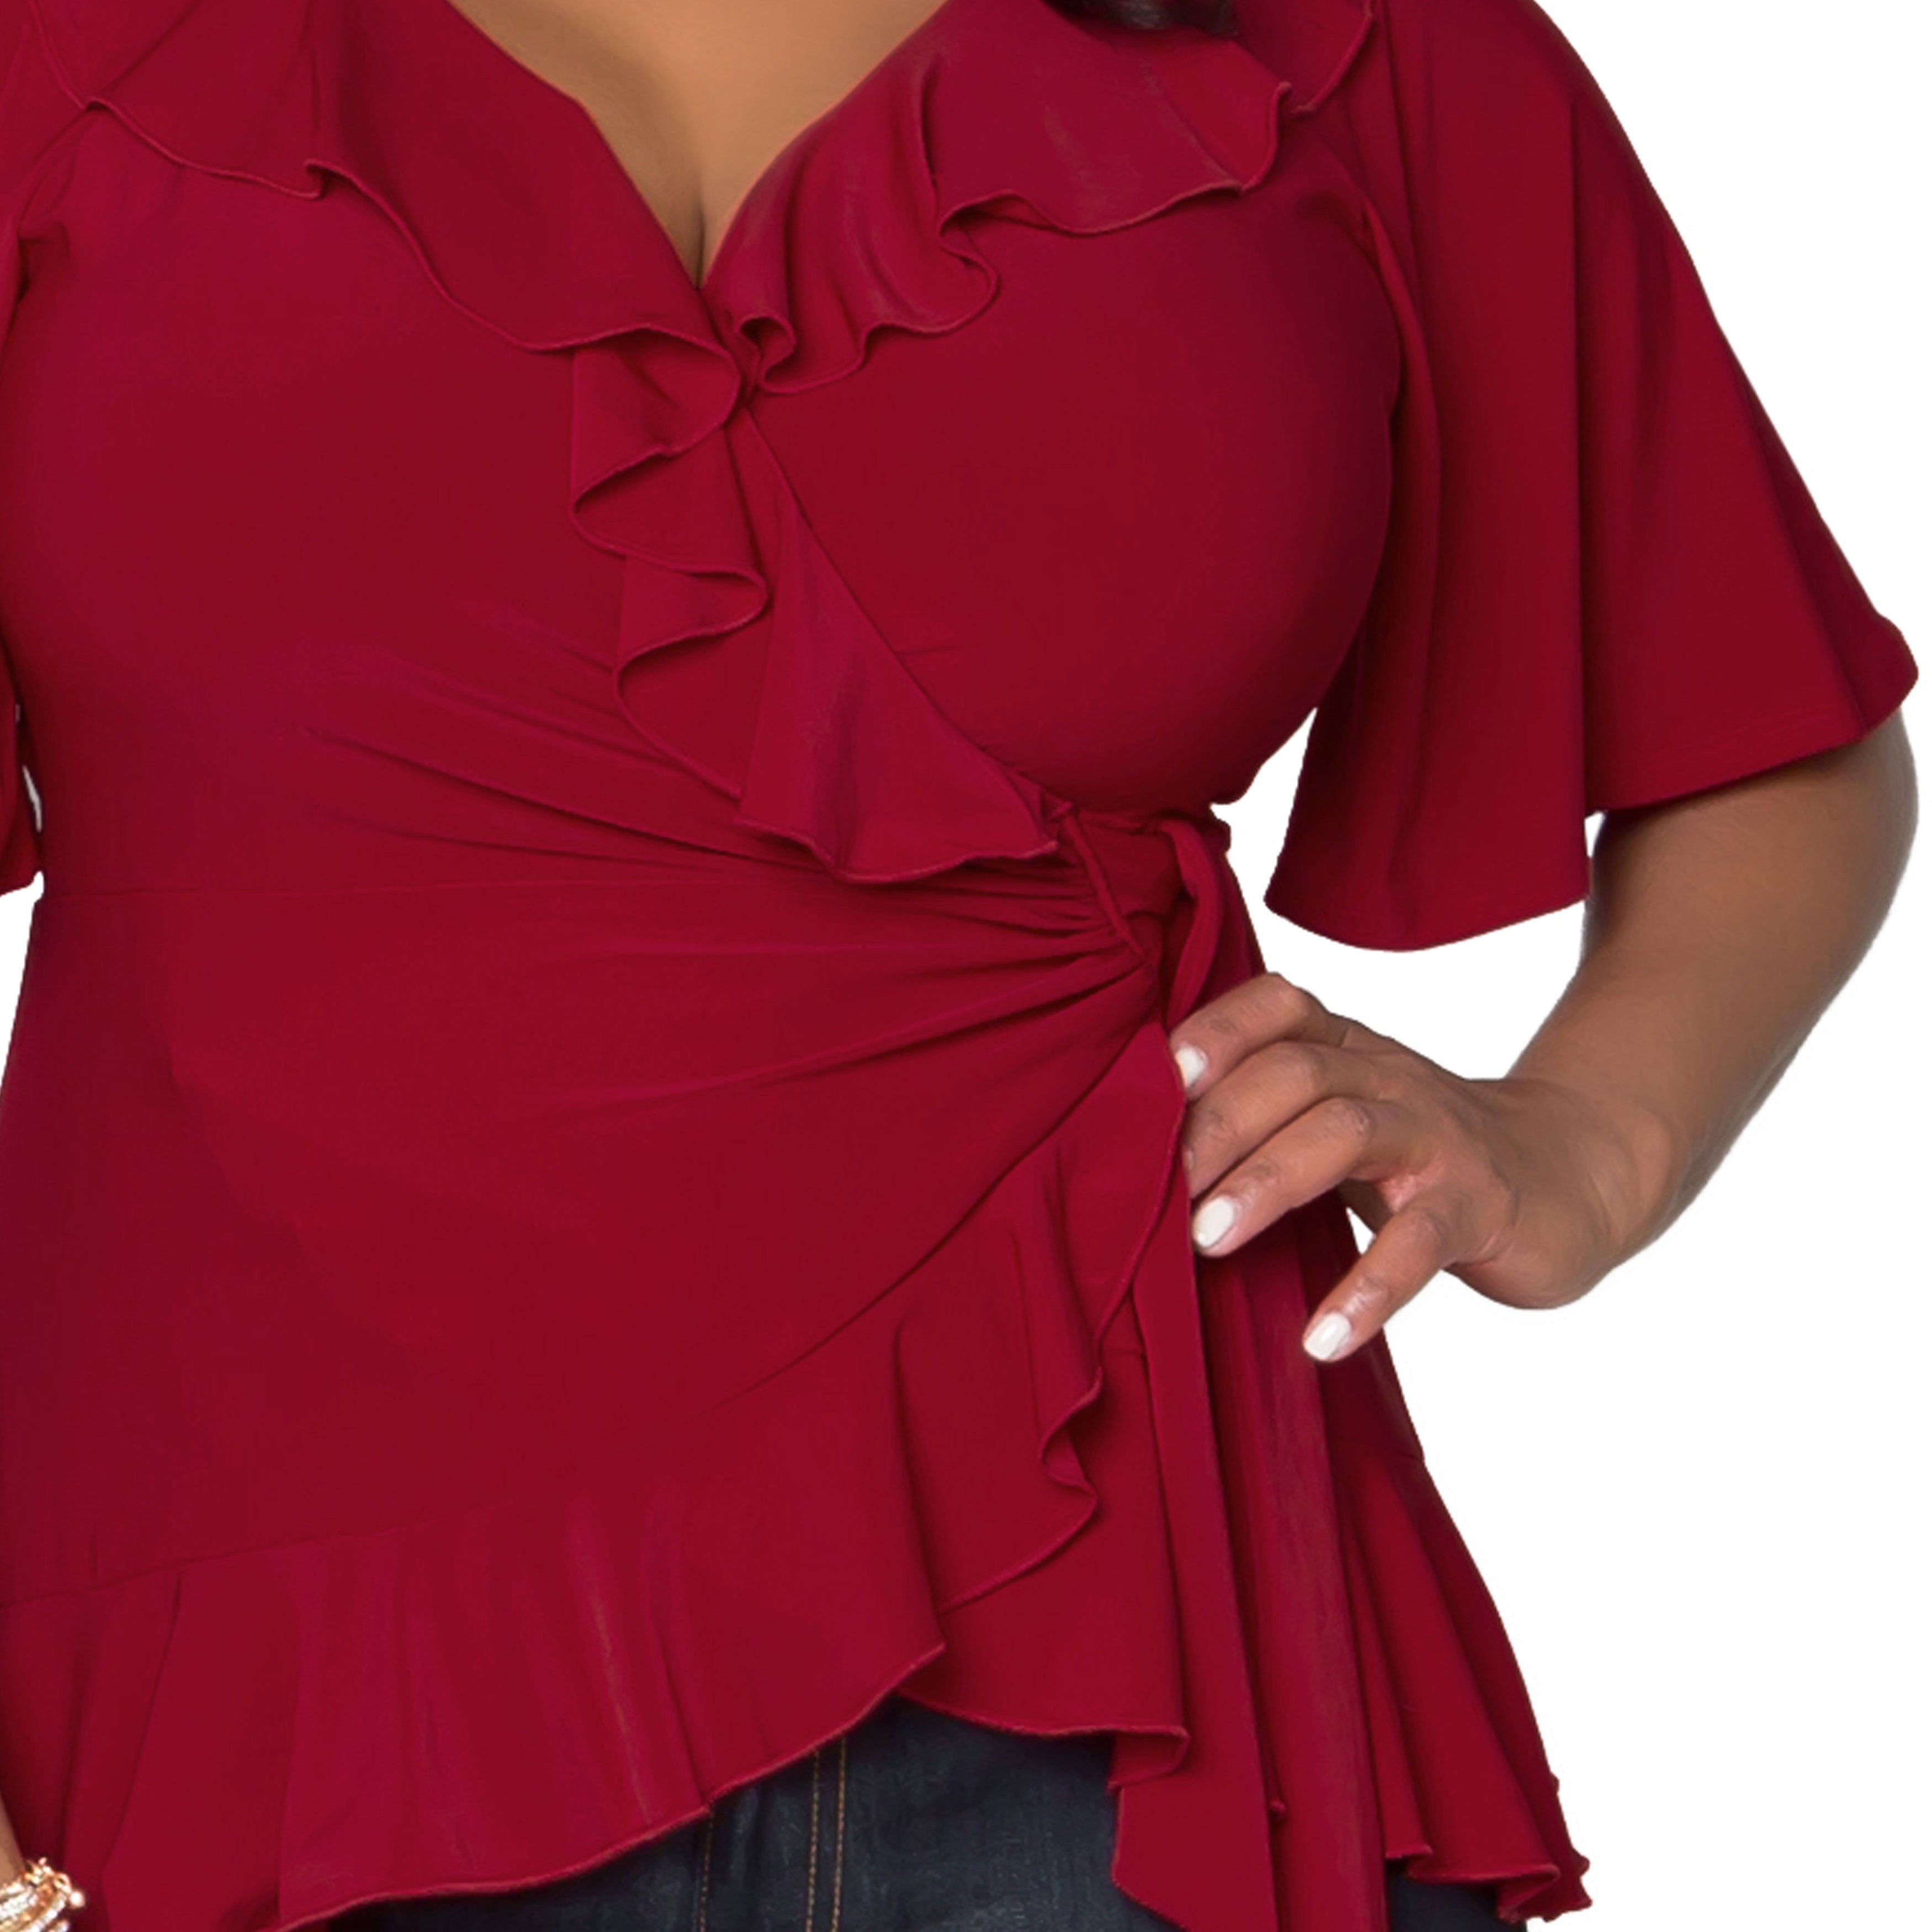 2072bded30961 Shop Kiyonna Women s Plus Size Whimsical Wrap Top - Free Shipping Today -  Overstock - 9207095